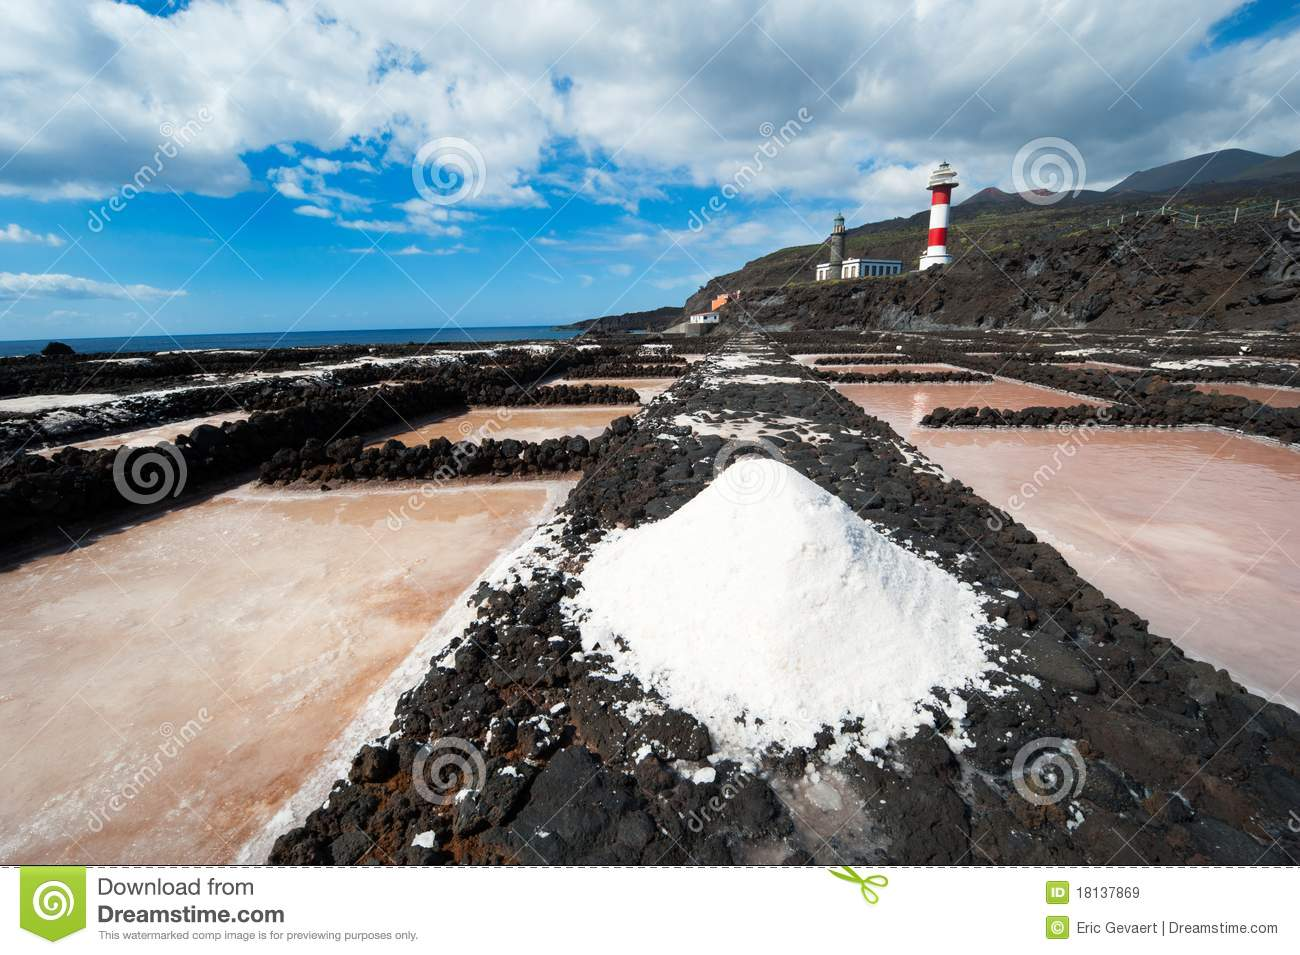 Salt evaporation ponds and lighthouses la palma royalty for Design of evaporation pond